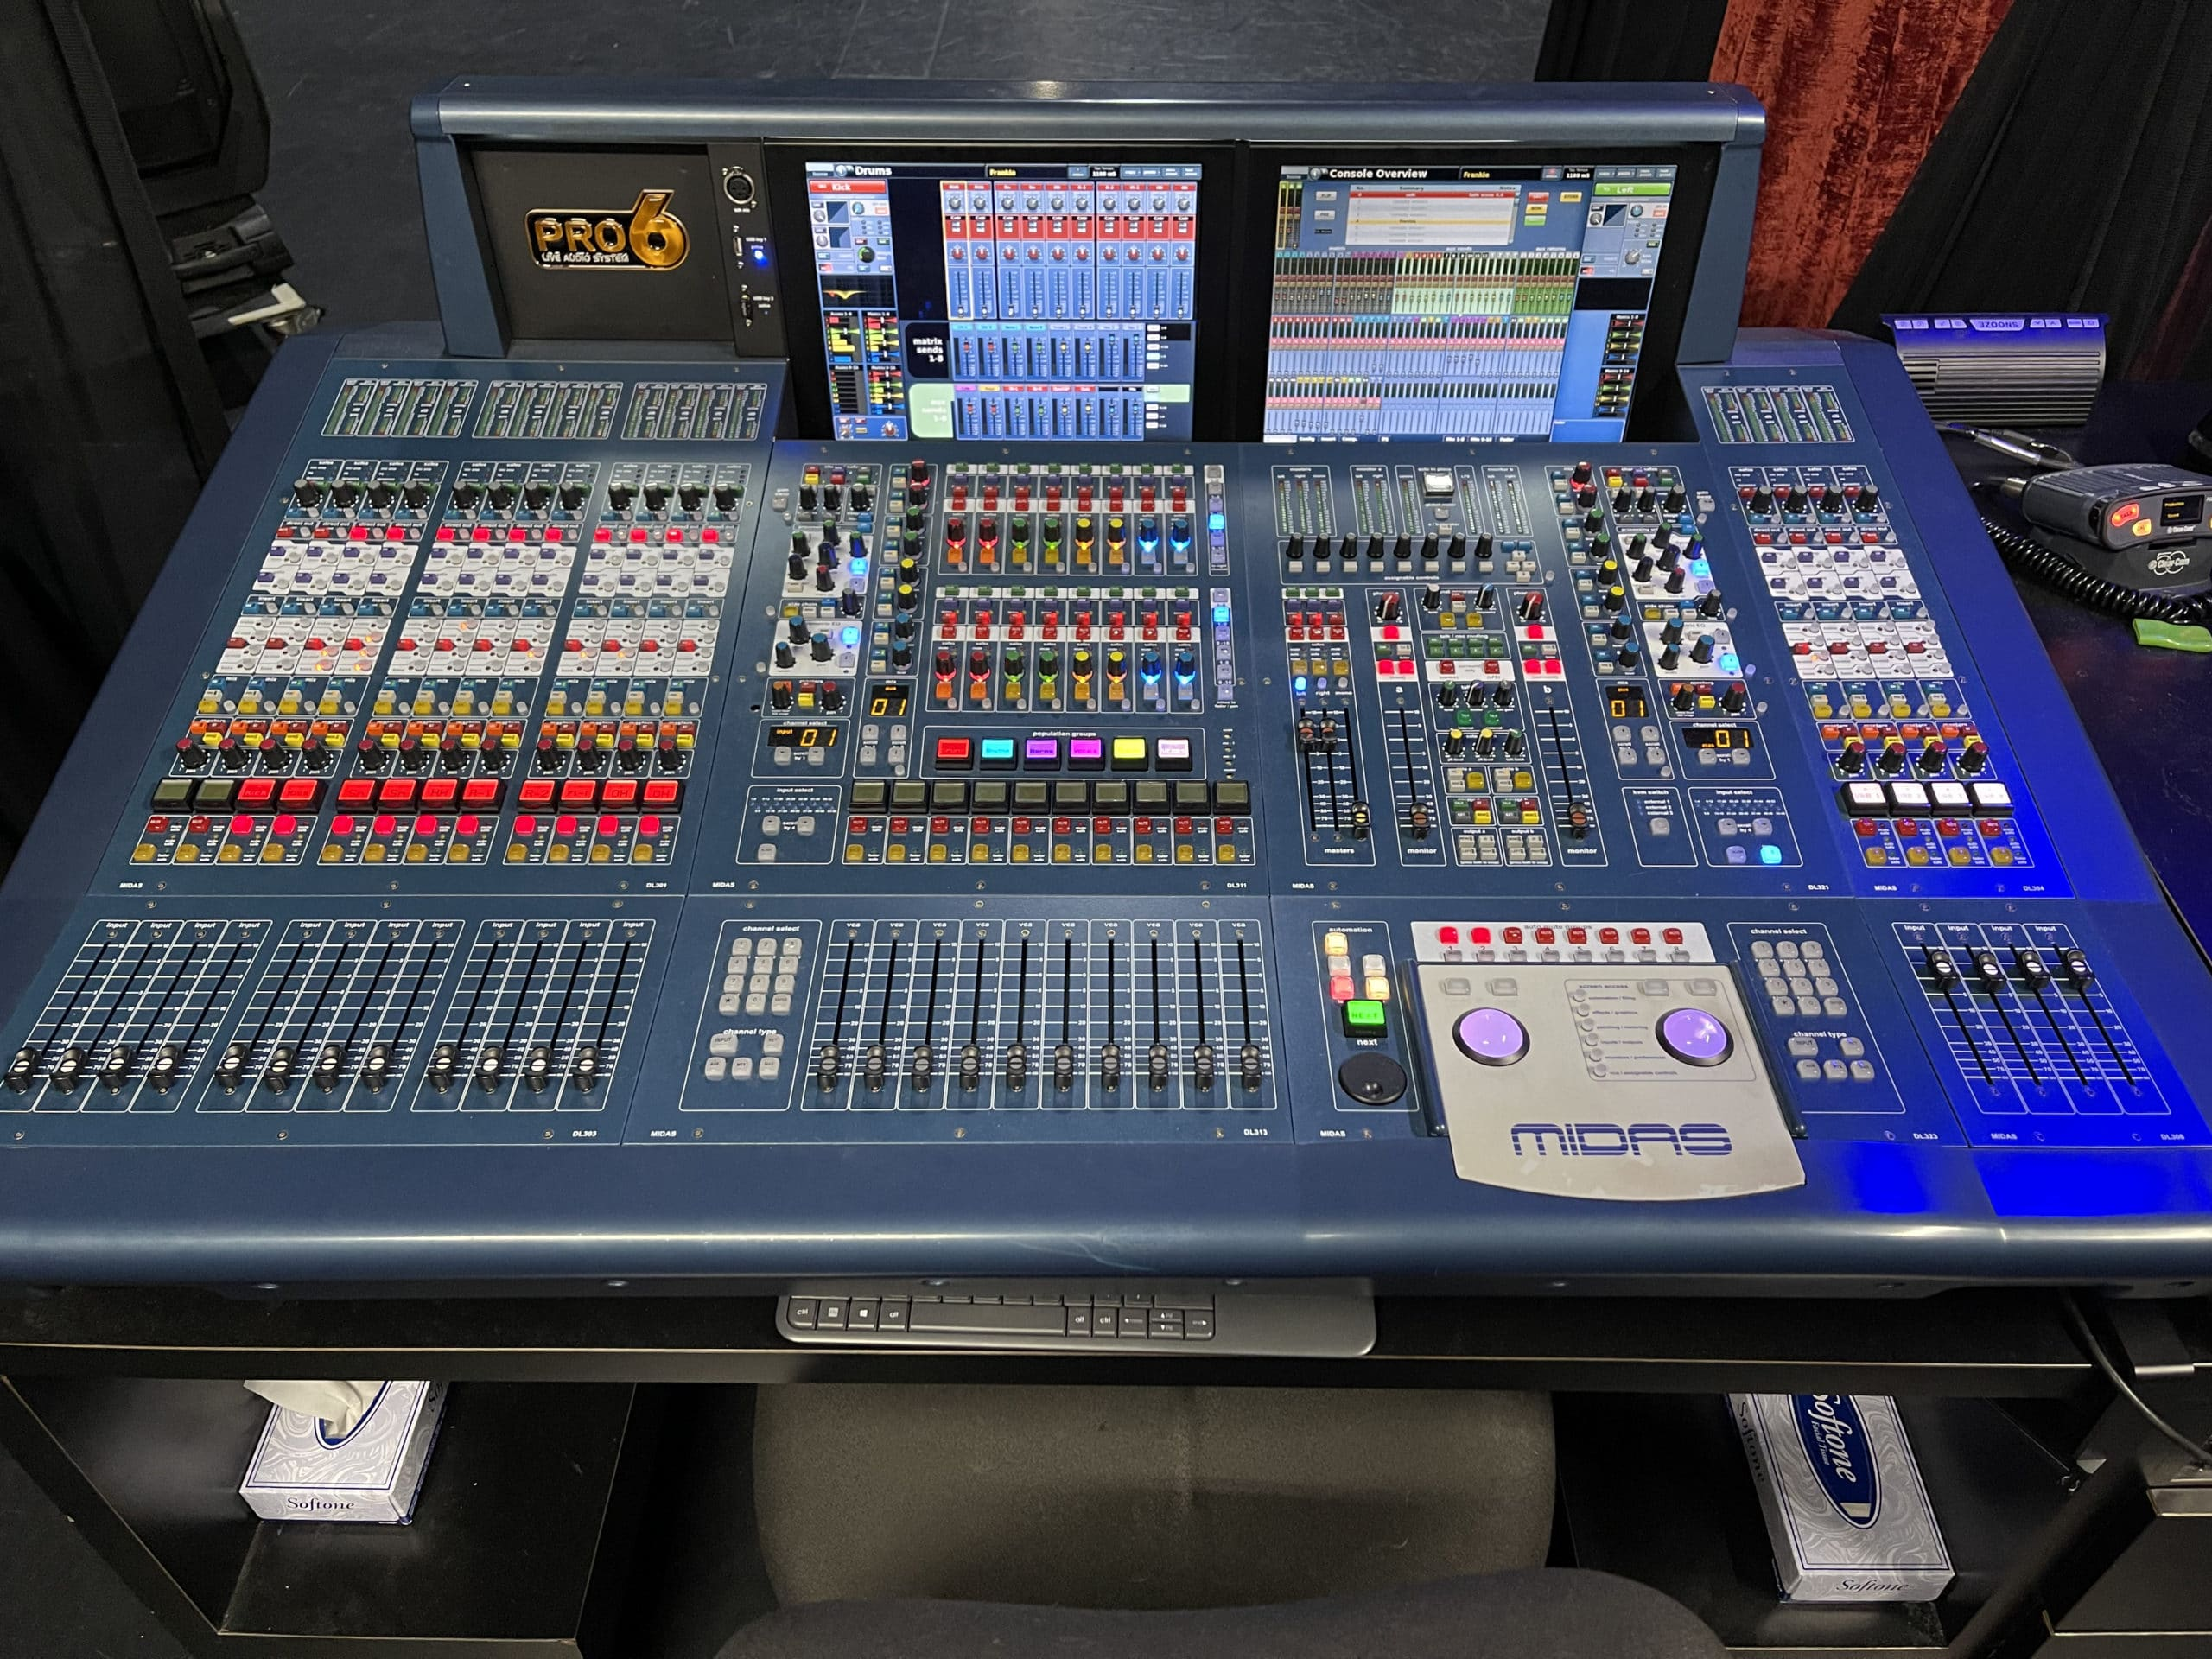 Midas PRO6 Live Audio Mixing System with 64 Input Channels w/ DL351 & DL451 Modular Stage Box w/ I/O Cards #C1278-2 Main